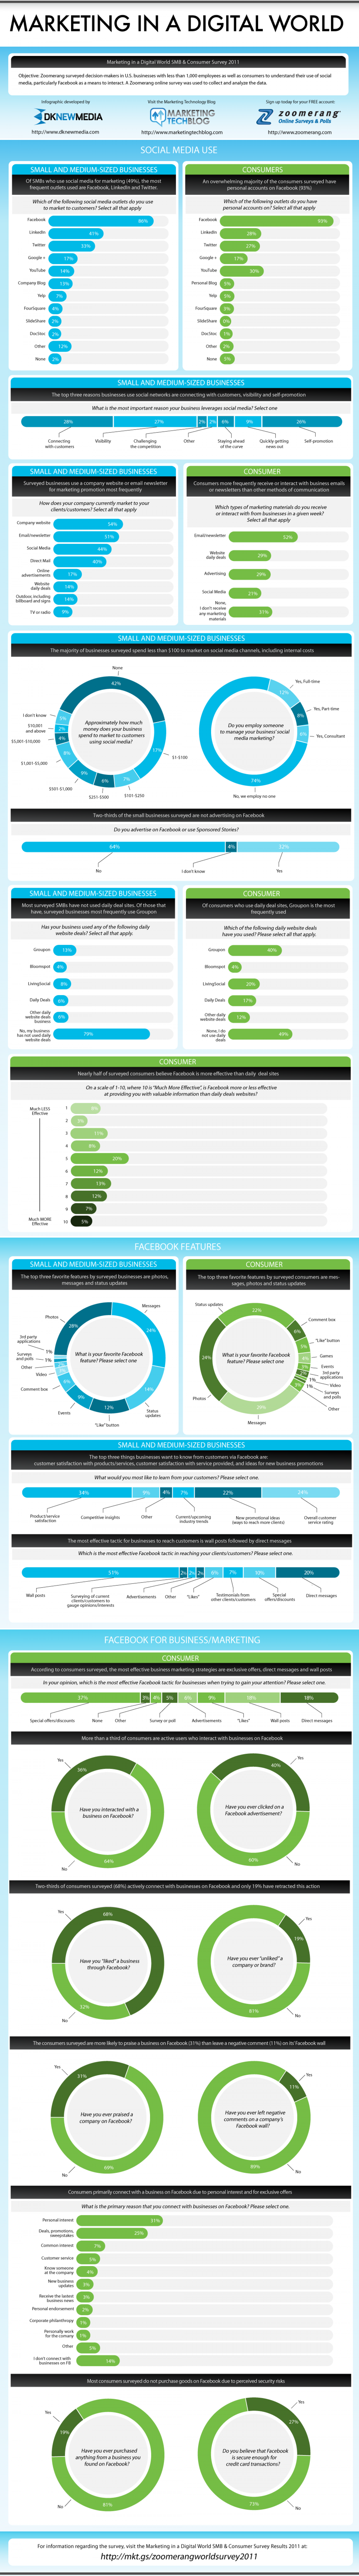 Consumer vs Business Behavior in Social Media Infographic